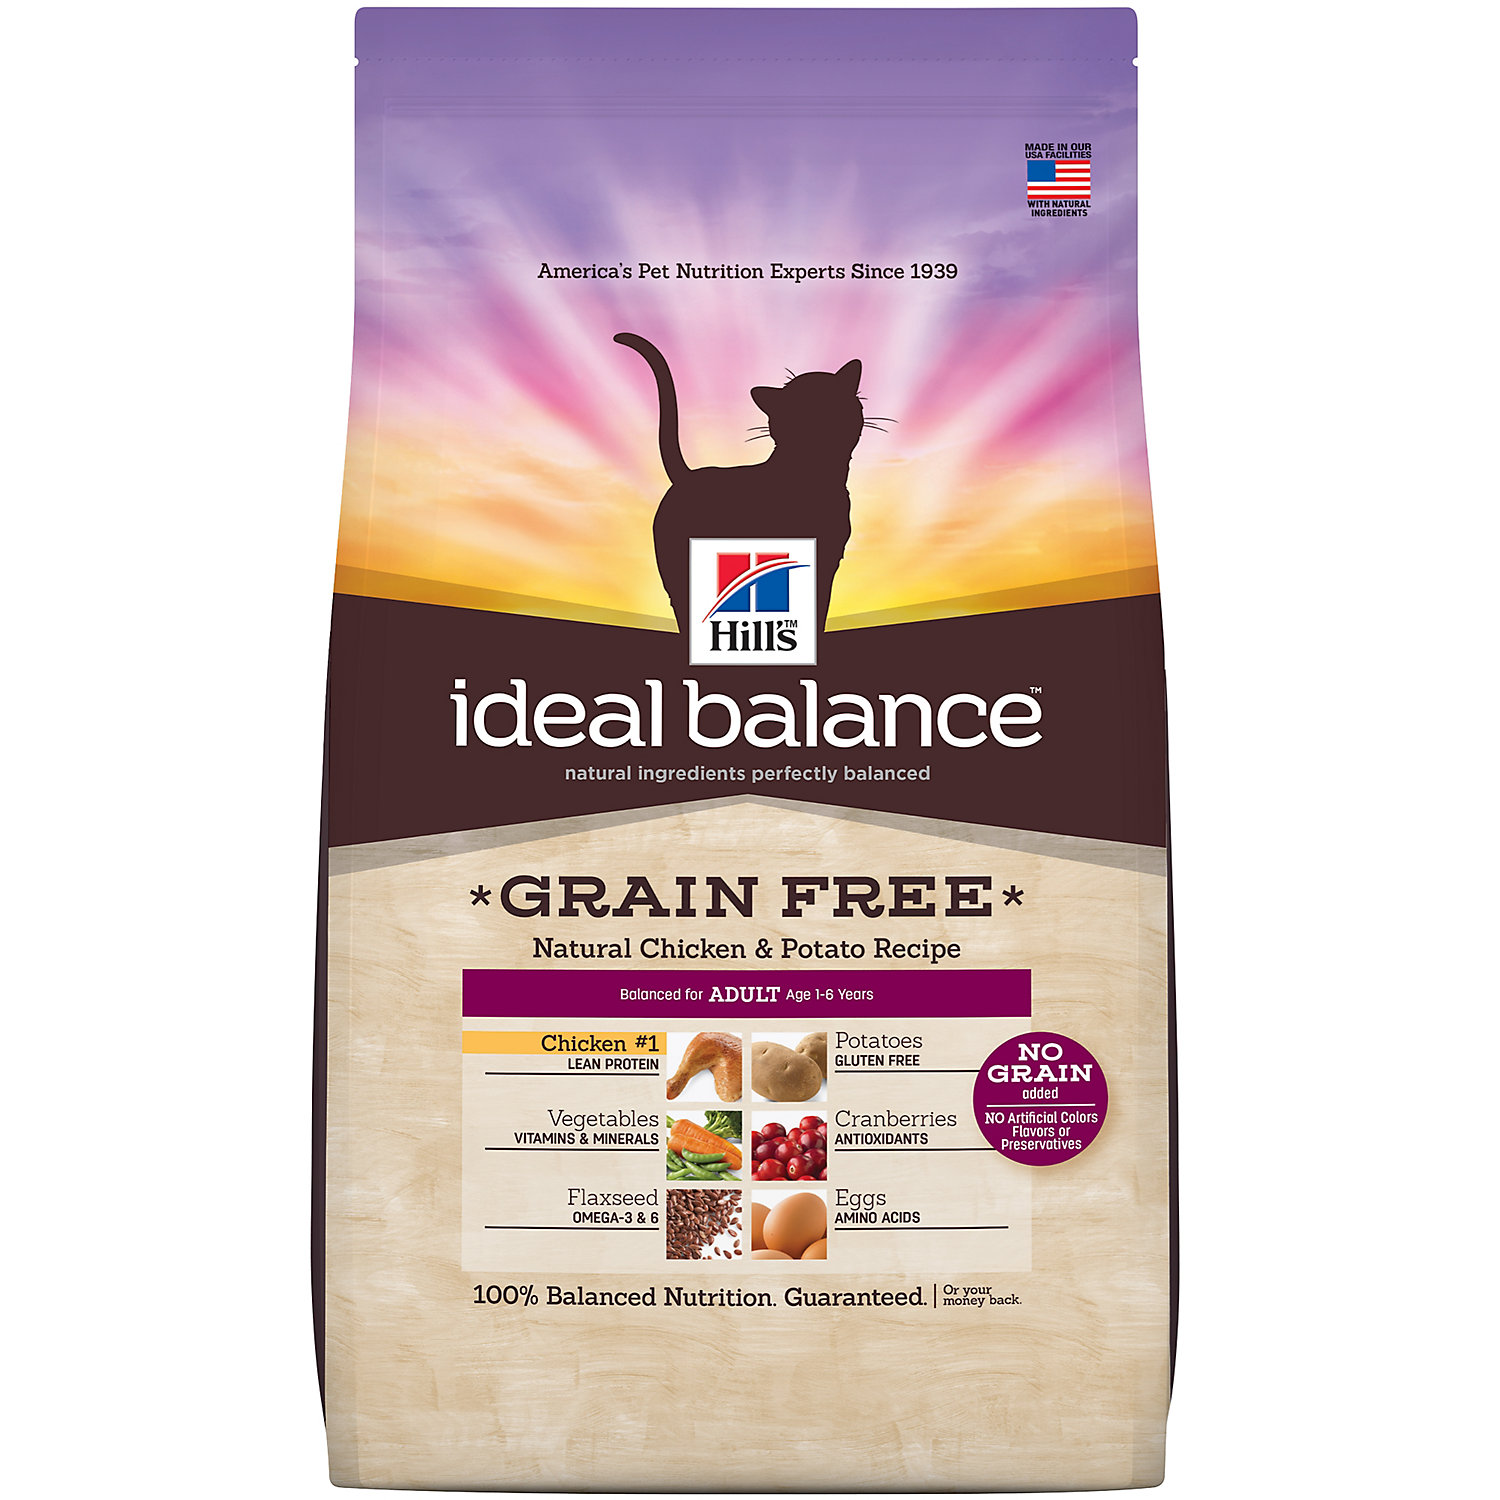 Hills Ideal Balance Grain Free Chicken And Potato Adult Cat Food 11 Lbs.